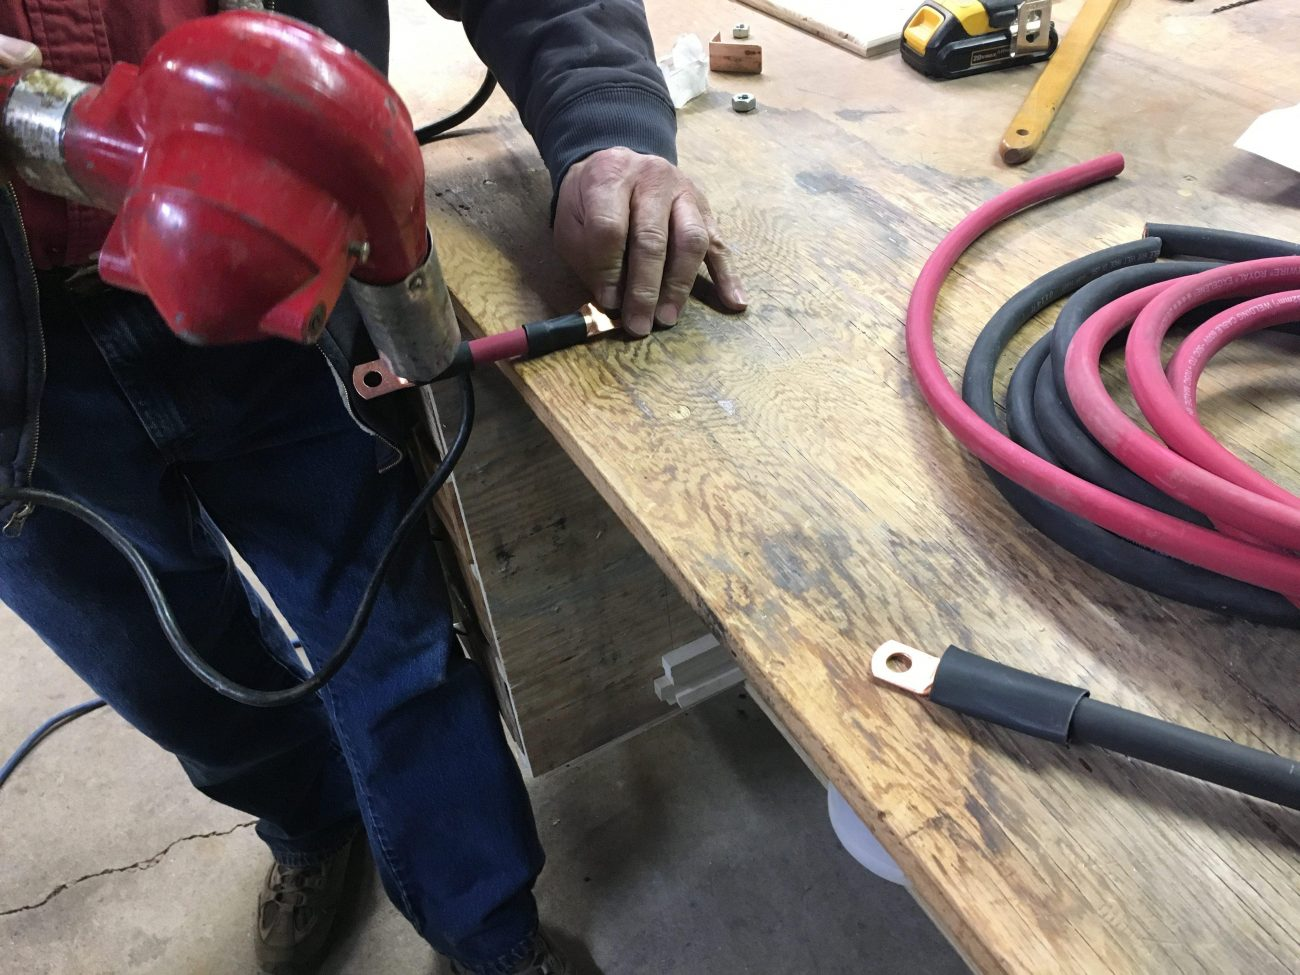 Creating custom wires with welding wire, copper lugs, and heat shrink.